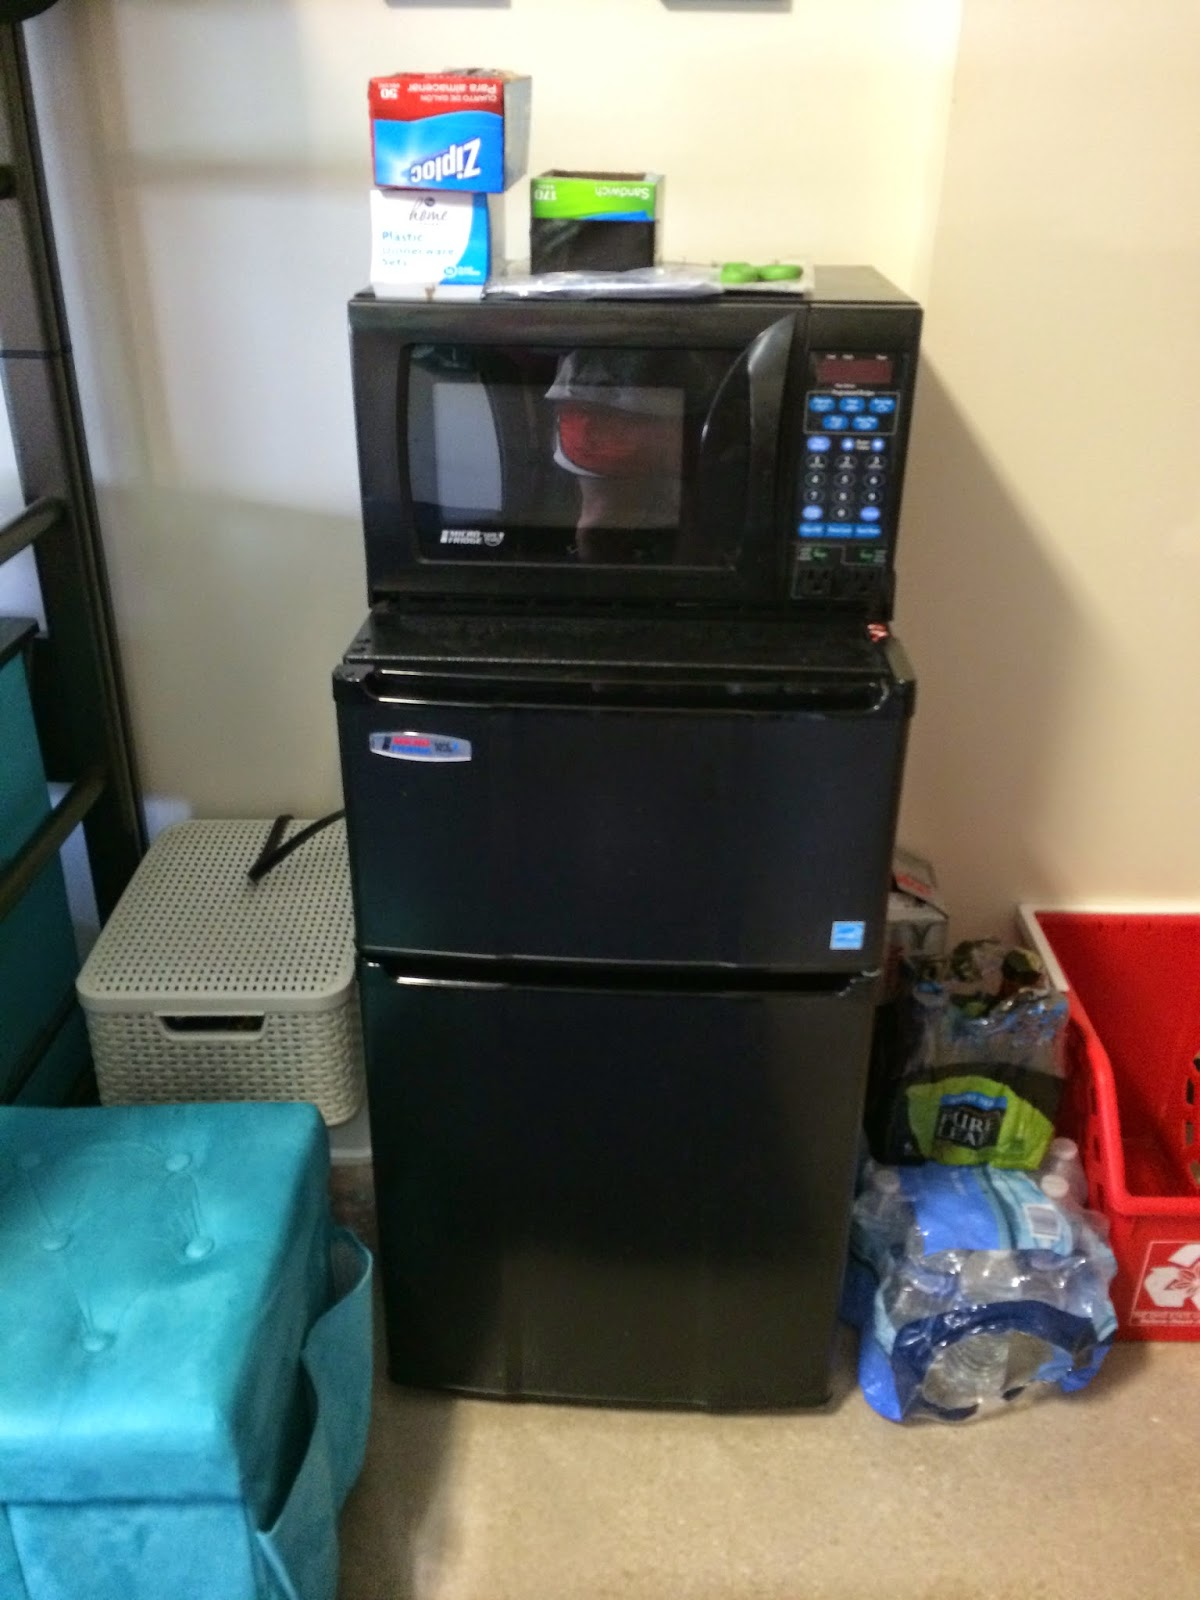 This Dorm Does Not Have Two Separate Rooms. The Beds Are Lofted, And They  Have Desks Underneath. The Fridge, Freezer, And Microwave Are In The  Bedroom As ... Part 70